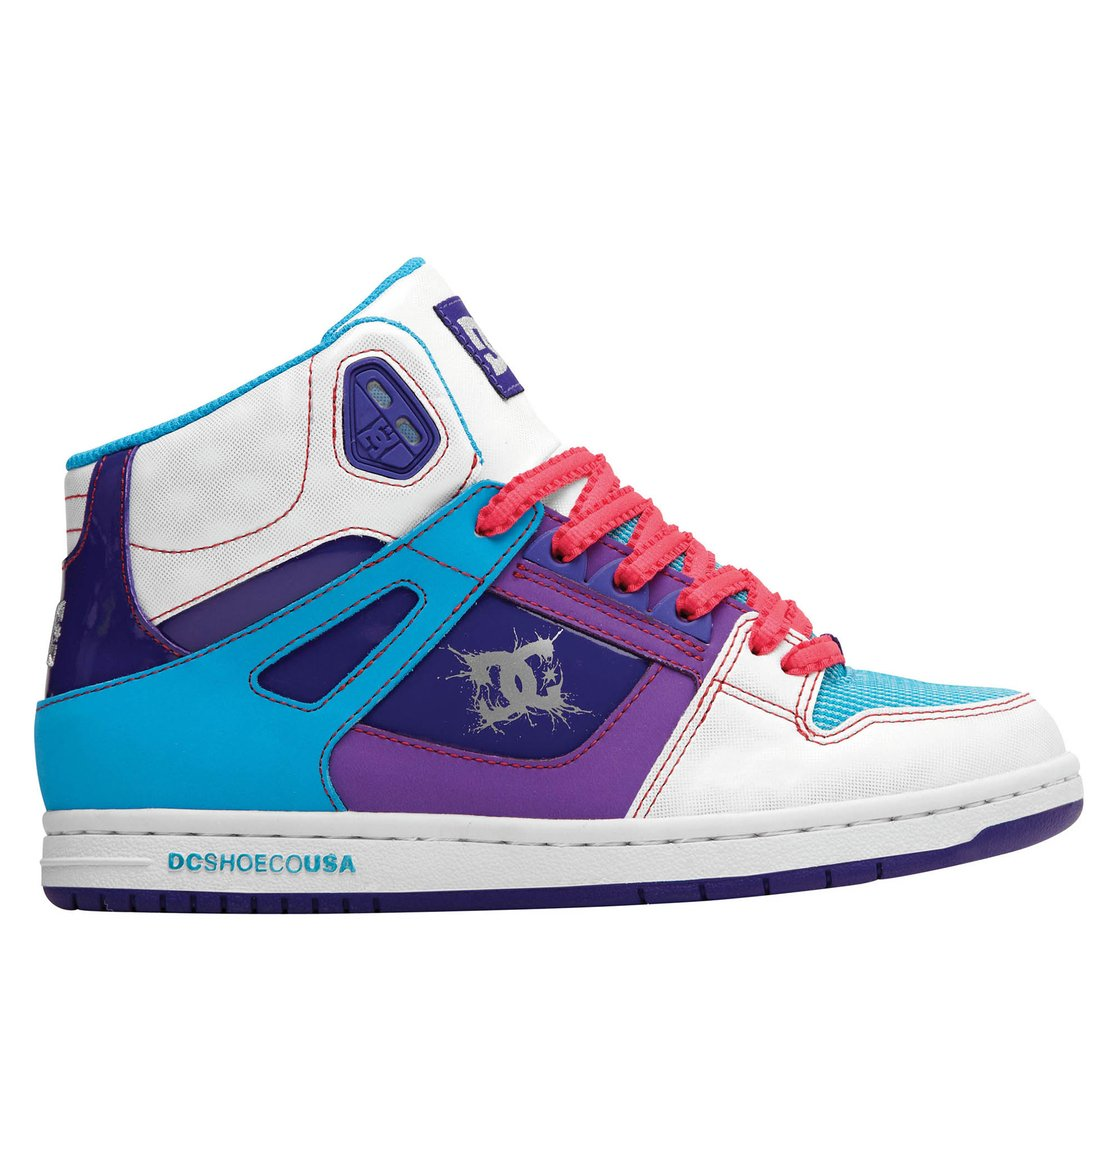 Dc Shoes Womens Purple And White